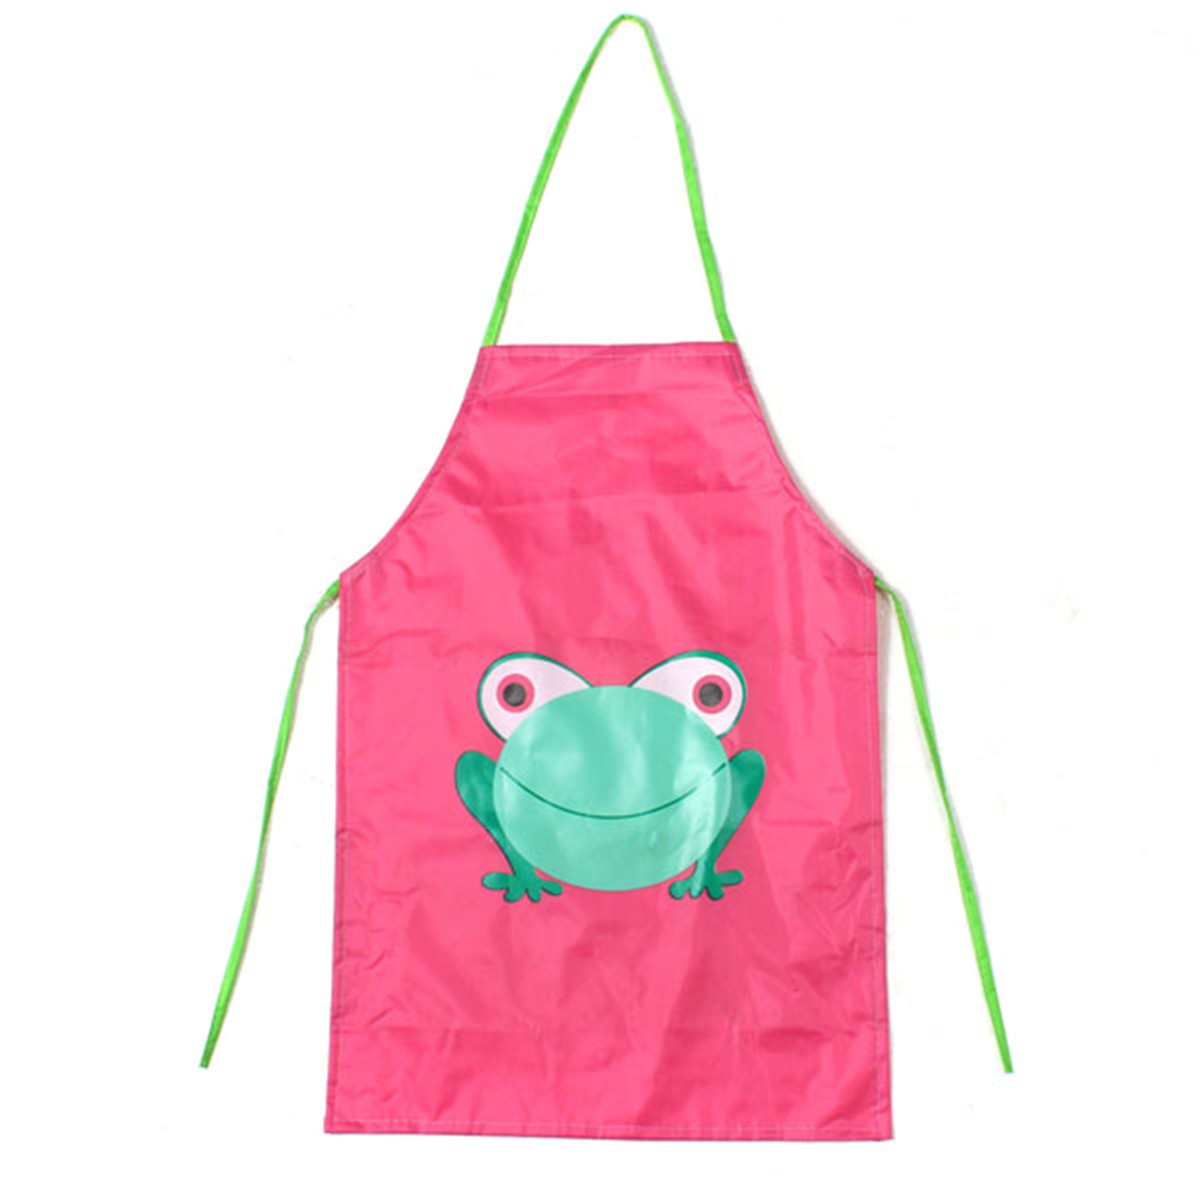 tablier cuisine enfant peinture maternelle dessin grenouille blouse 5 couleur ebay. Black Bedroom Furniture Sets. Home Design Ideas